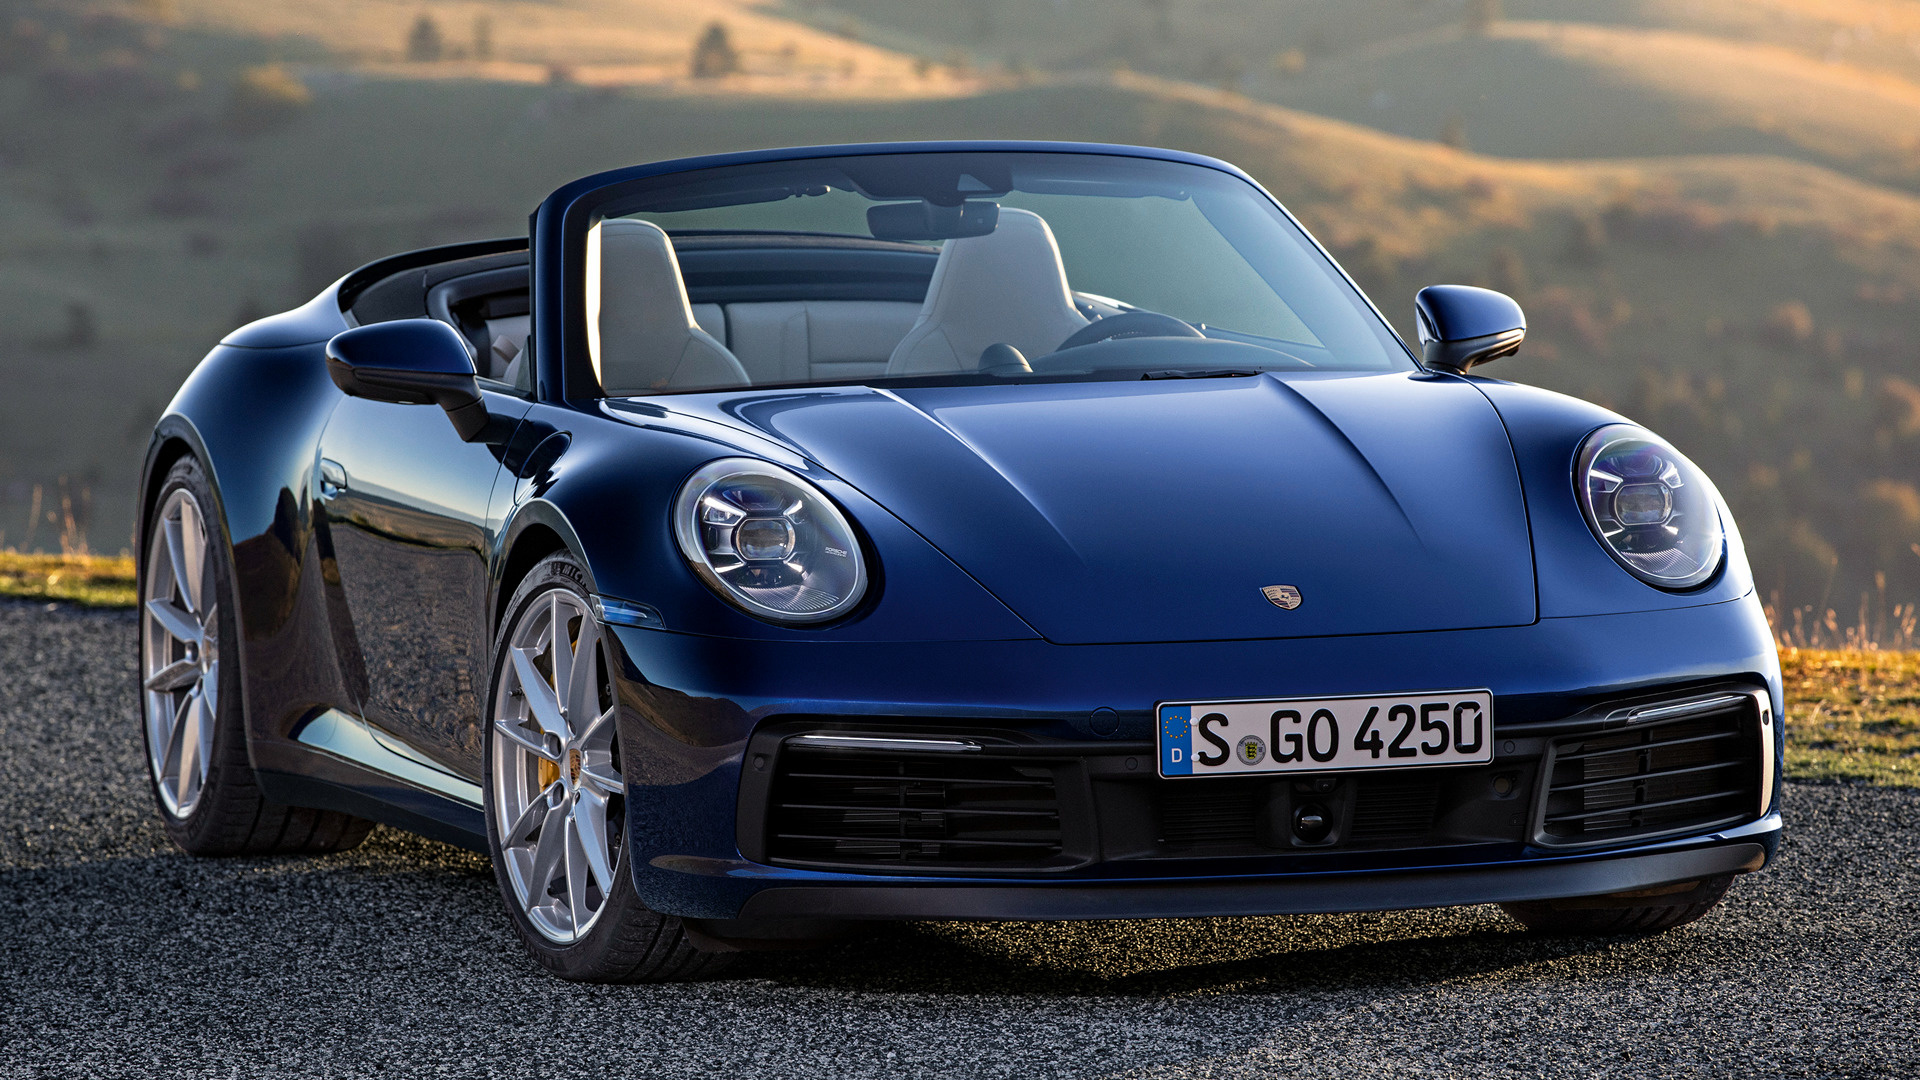 2019 Porsche 911 Carrera S Cabriolet   Wallpapers and HD Images 1920x1080